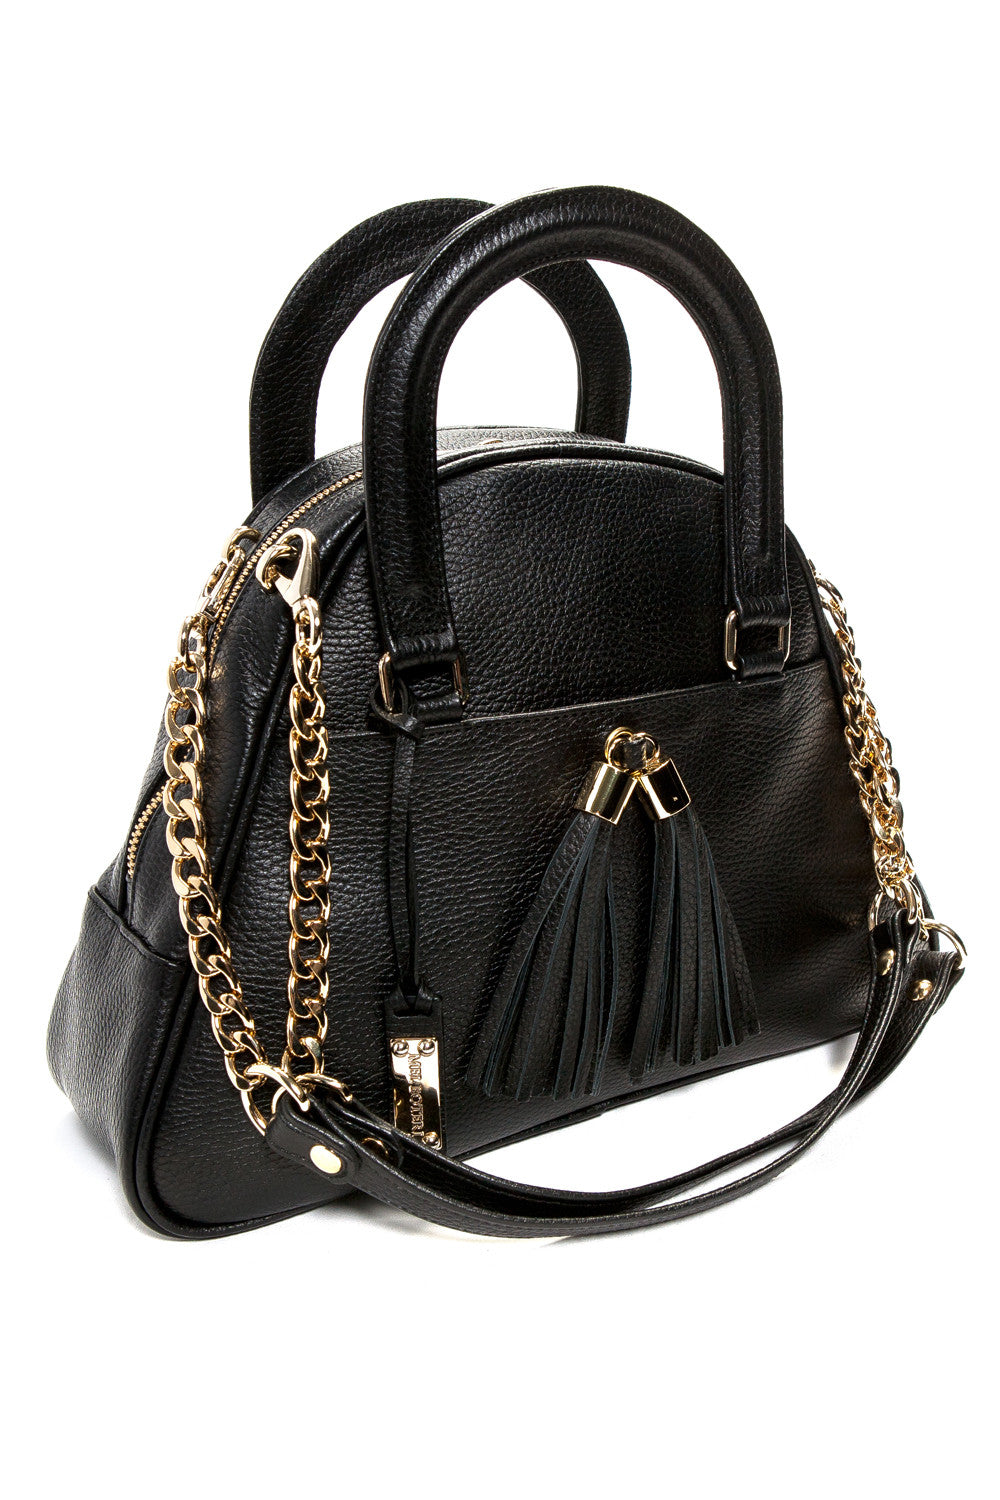 Black 'Marissa' Small Tote Handbag | Mel Boteri | Side View With Detachable Straps